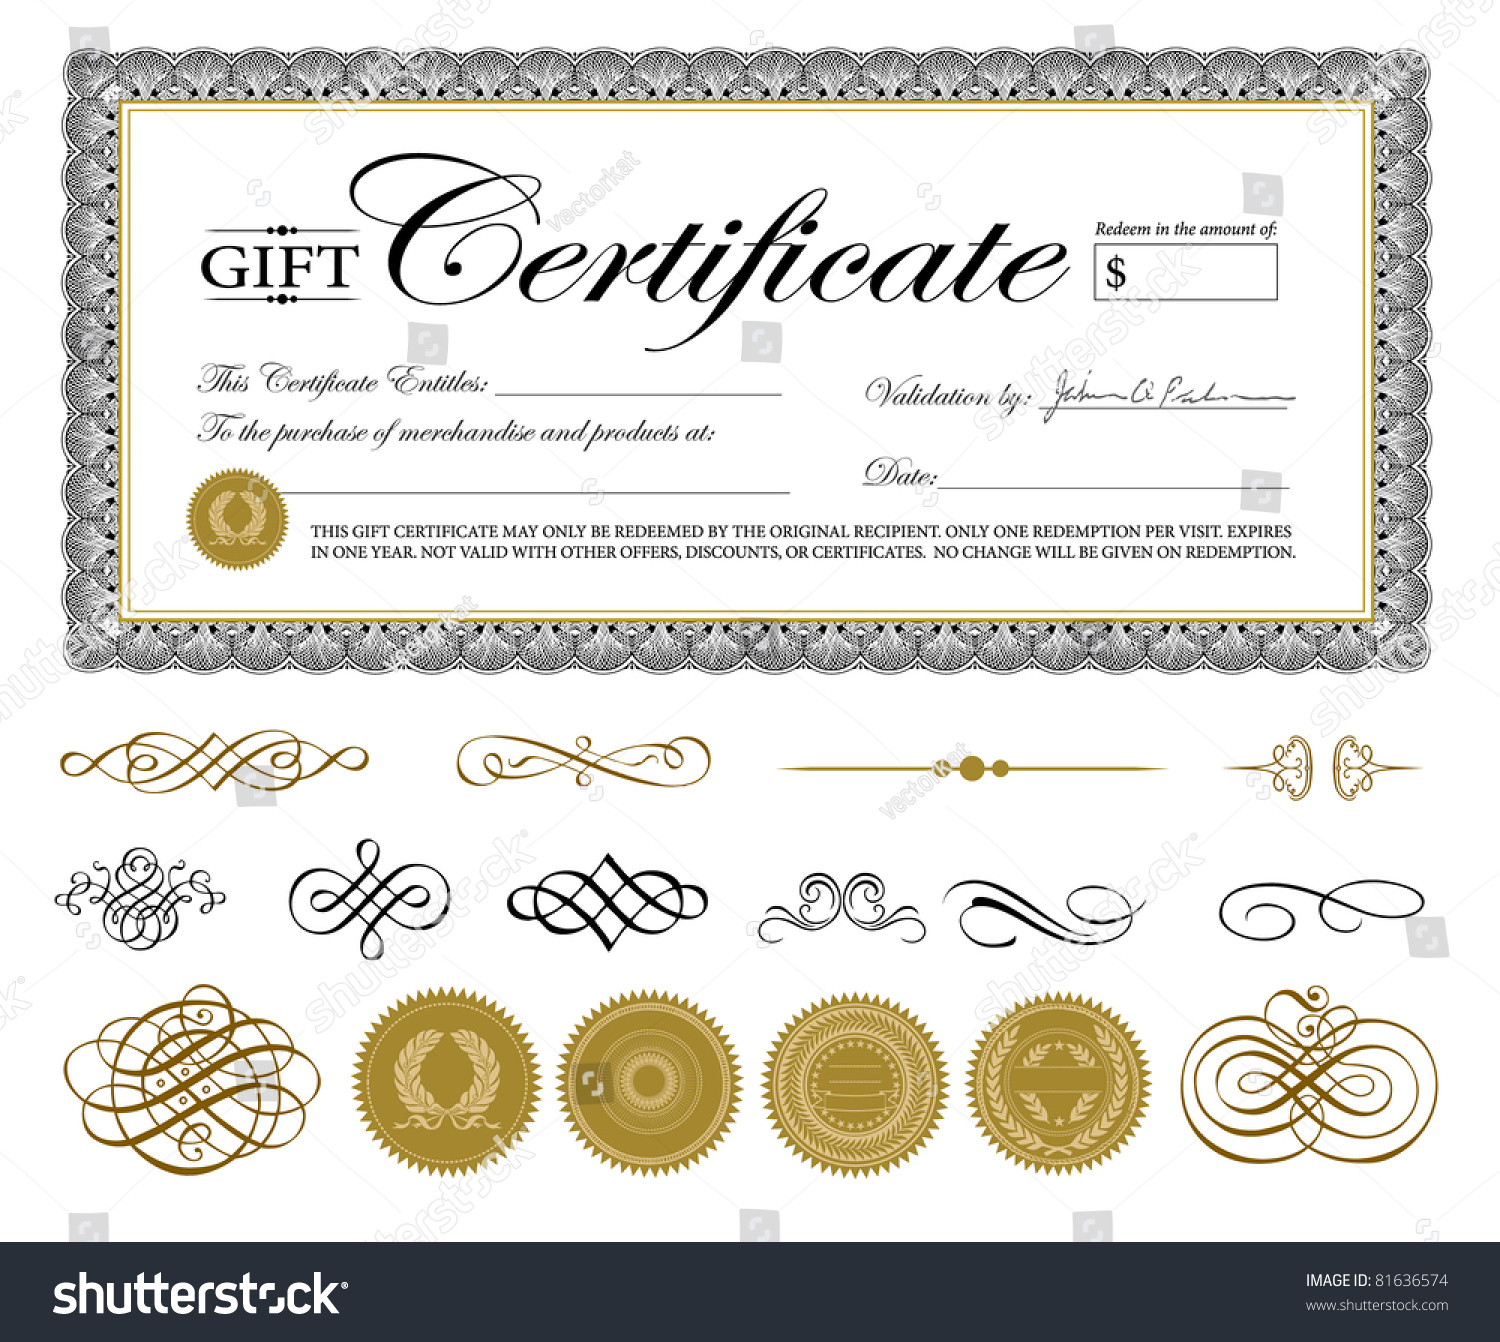 Template For Gift Certificate unsecured loan agreement sample – Gift Certificate Template